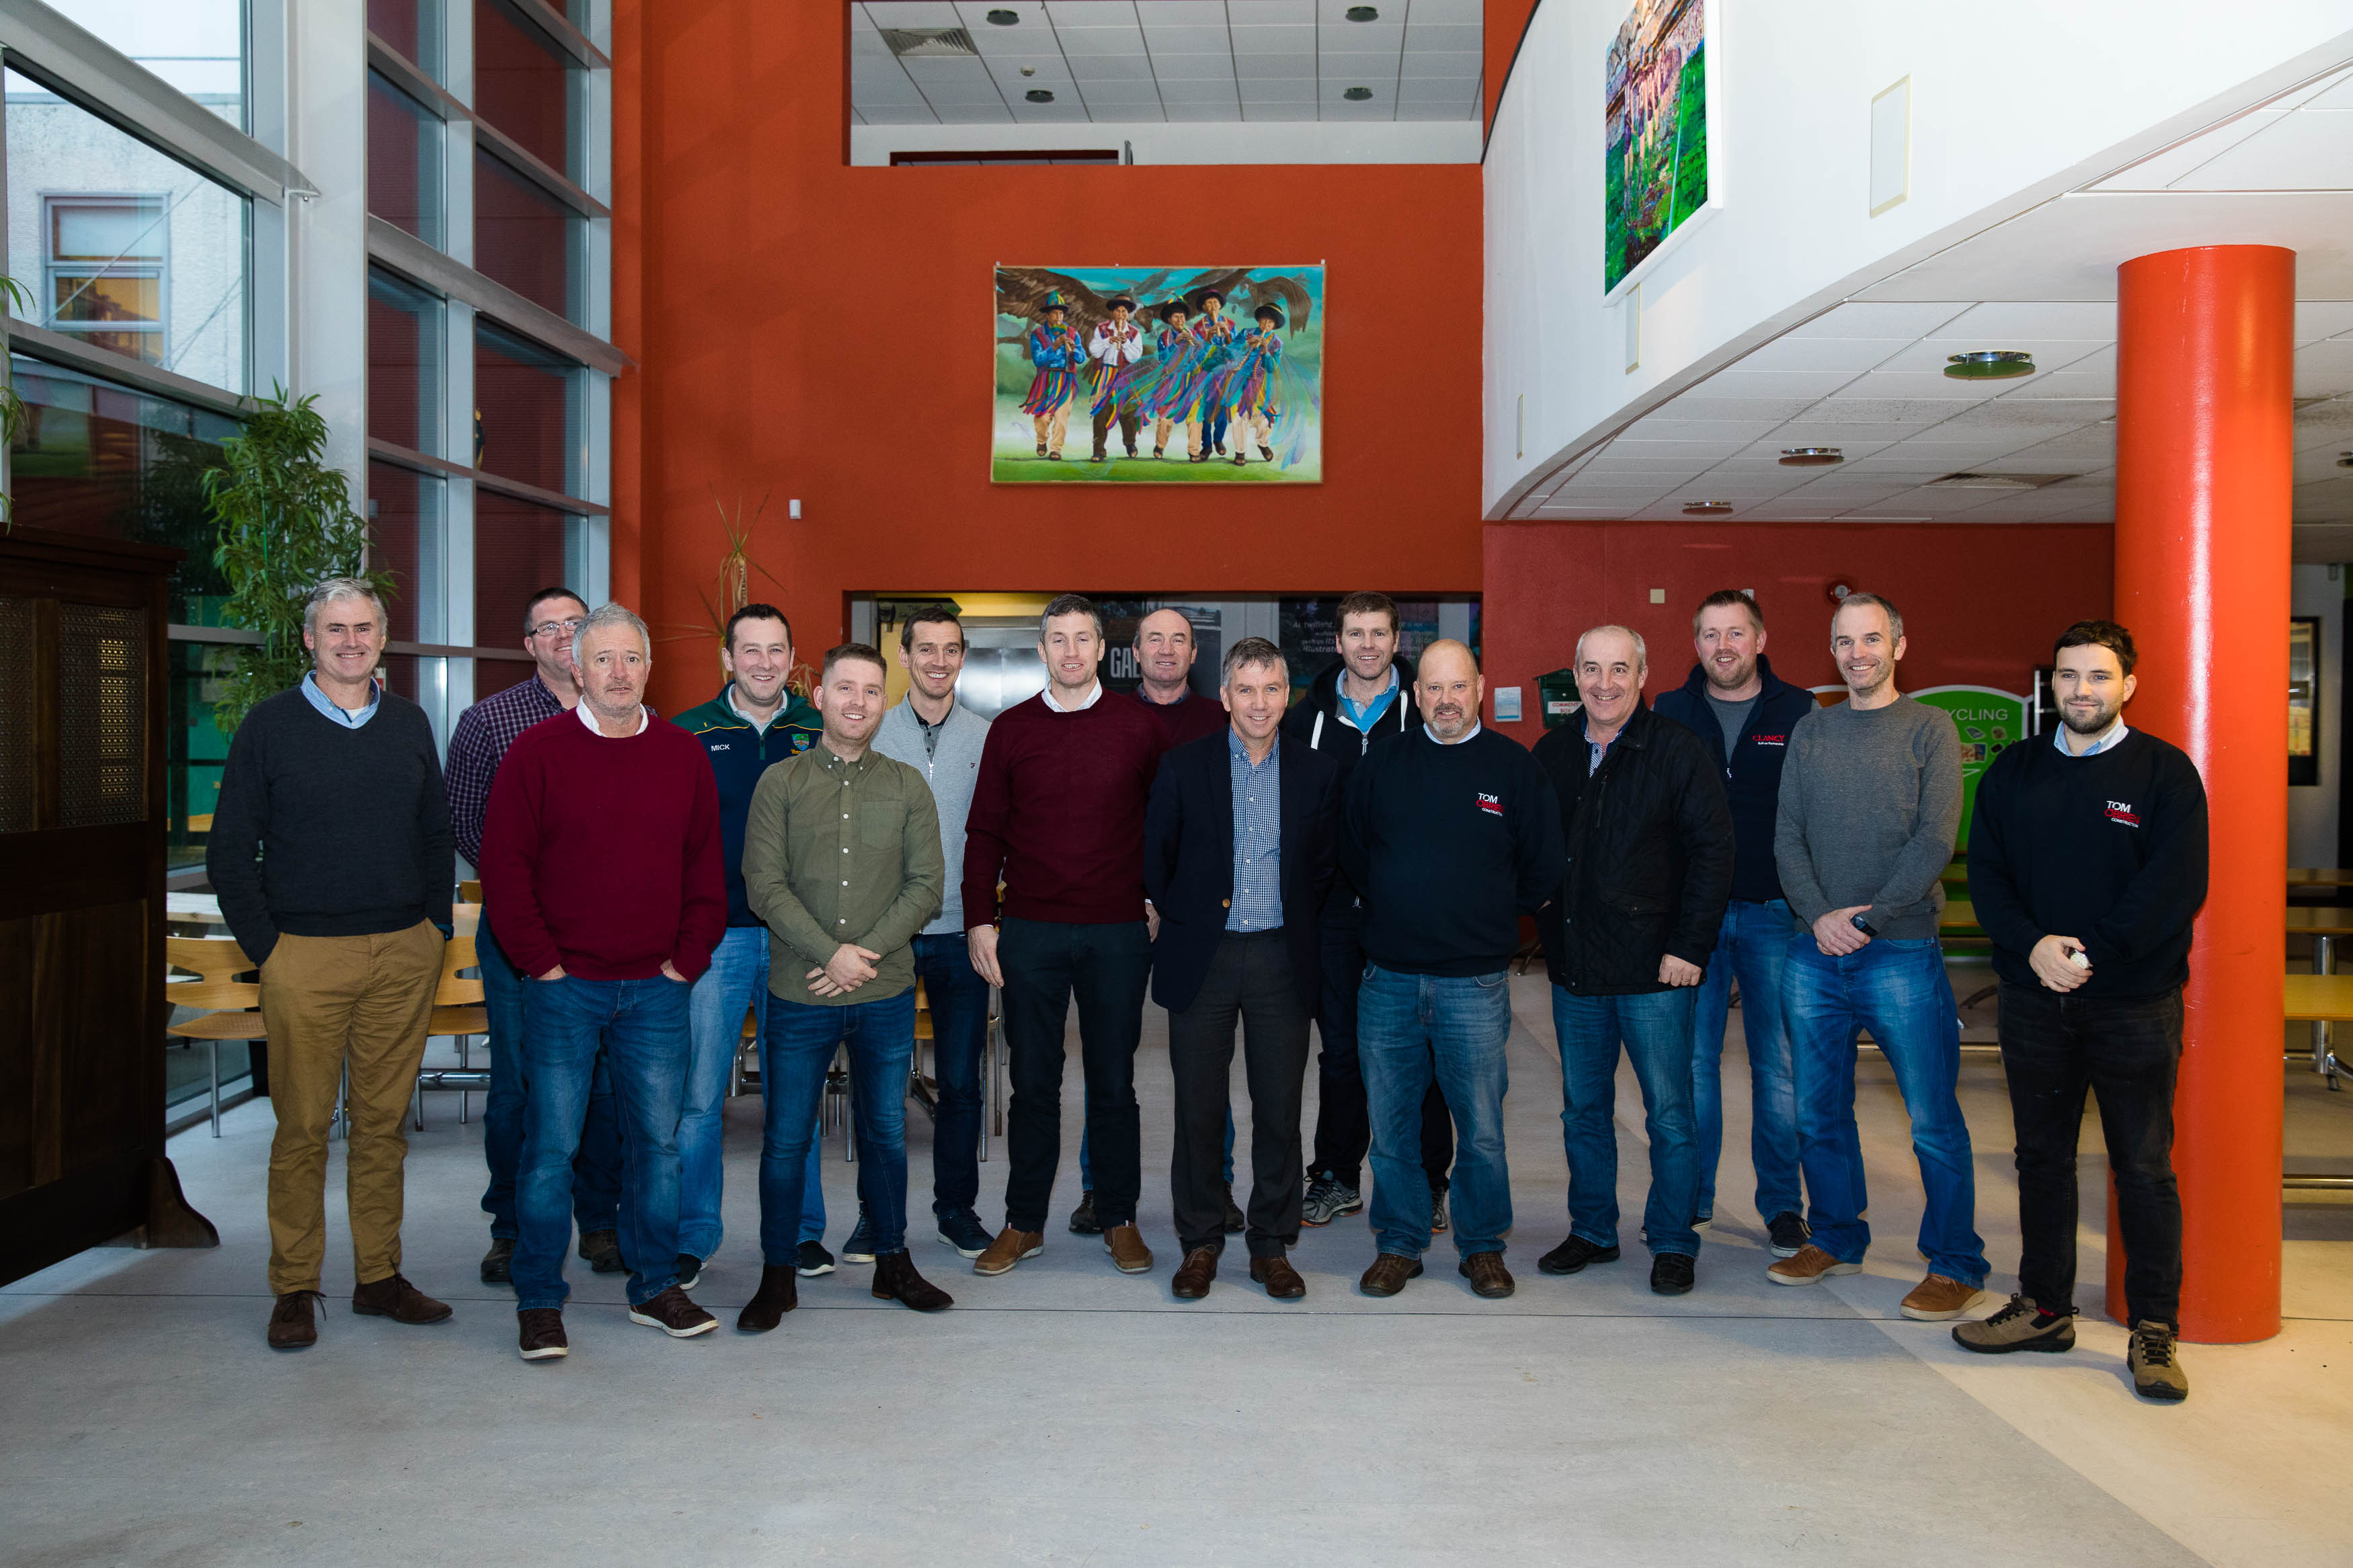 BSc in Construction Site Management classgroup with their lecturers welcome John O'Shaughnessy of Clancy Construction